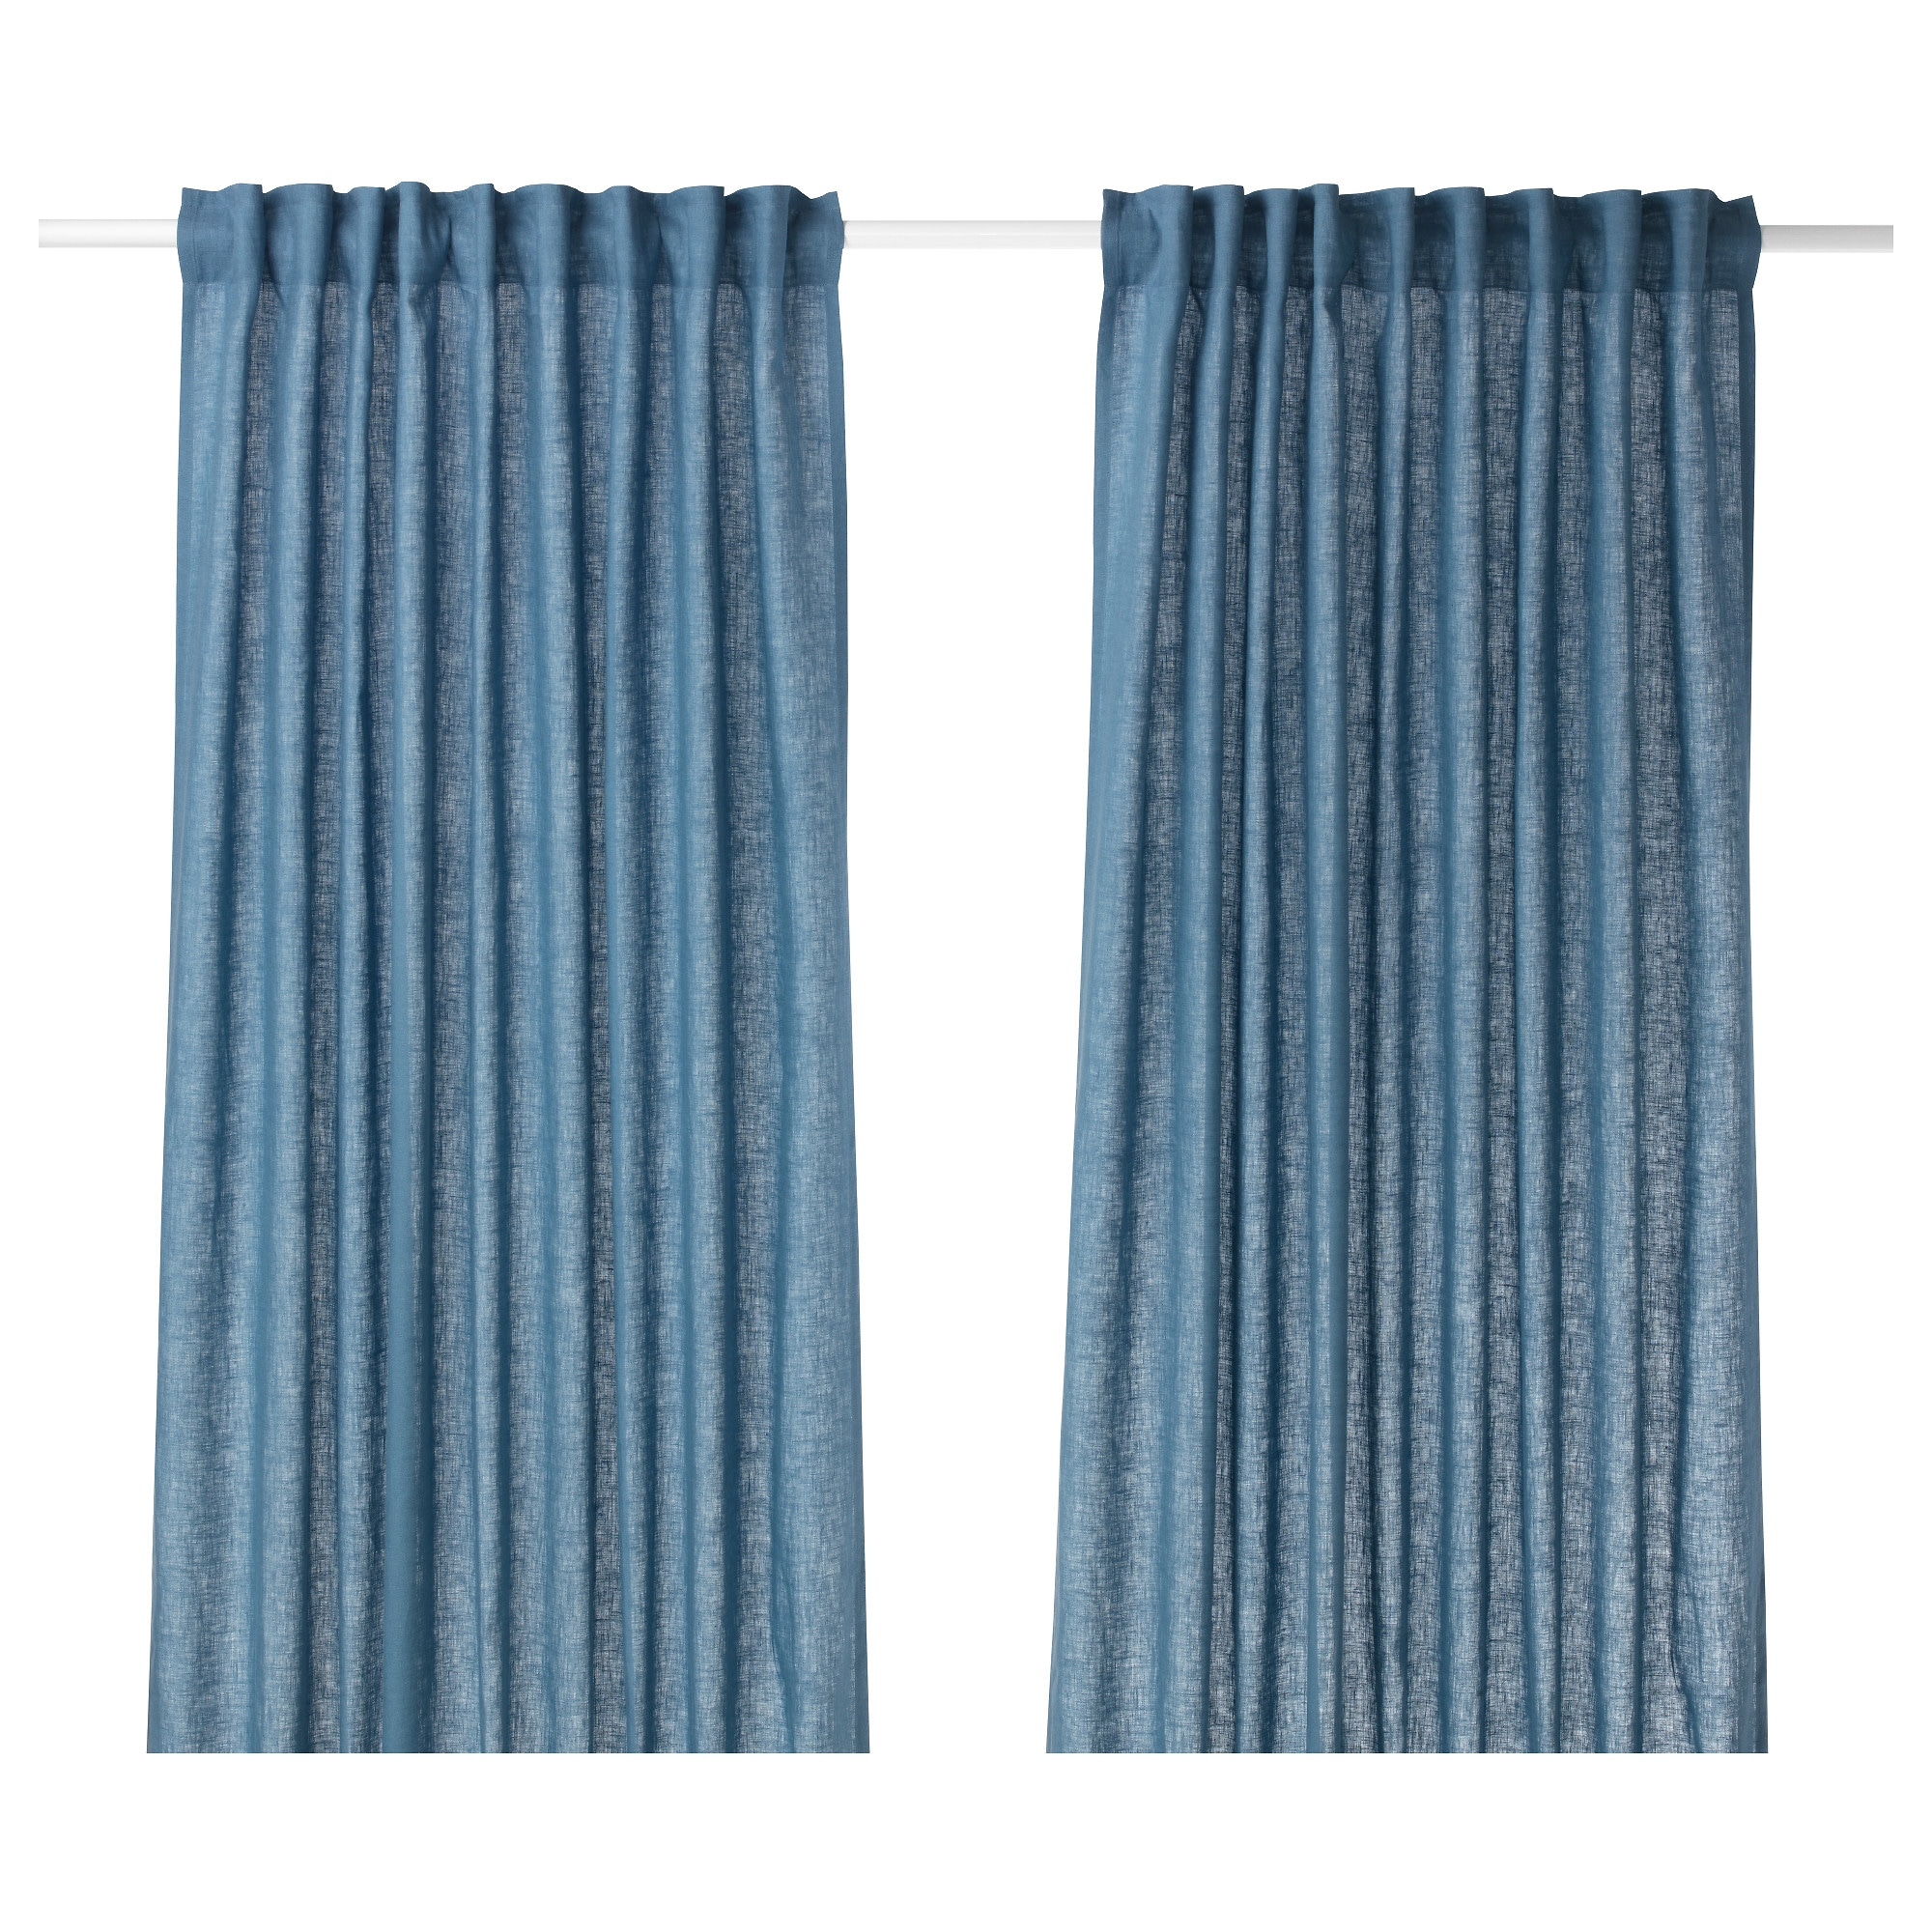 Cheap roman shades clearance - Aina Curtains 1 Pair Blue Length 98 Width 57 Weight